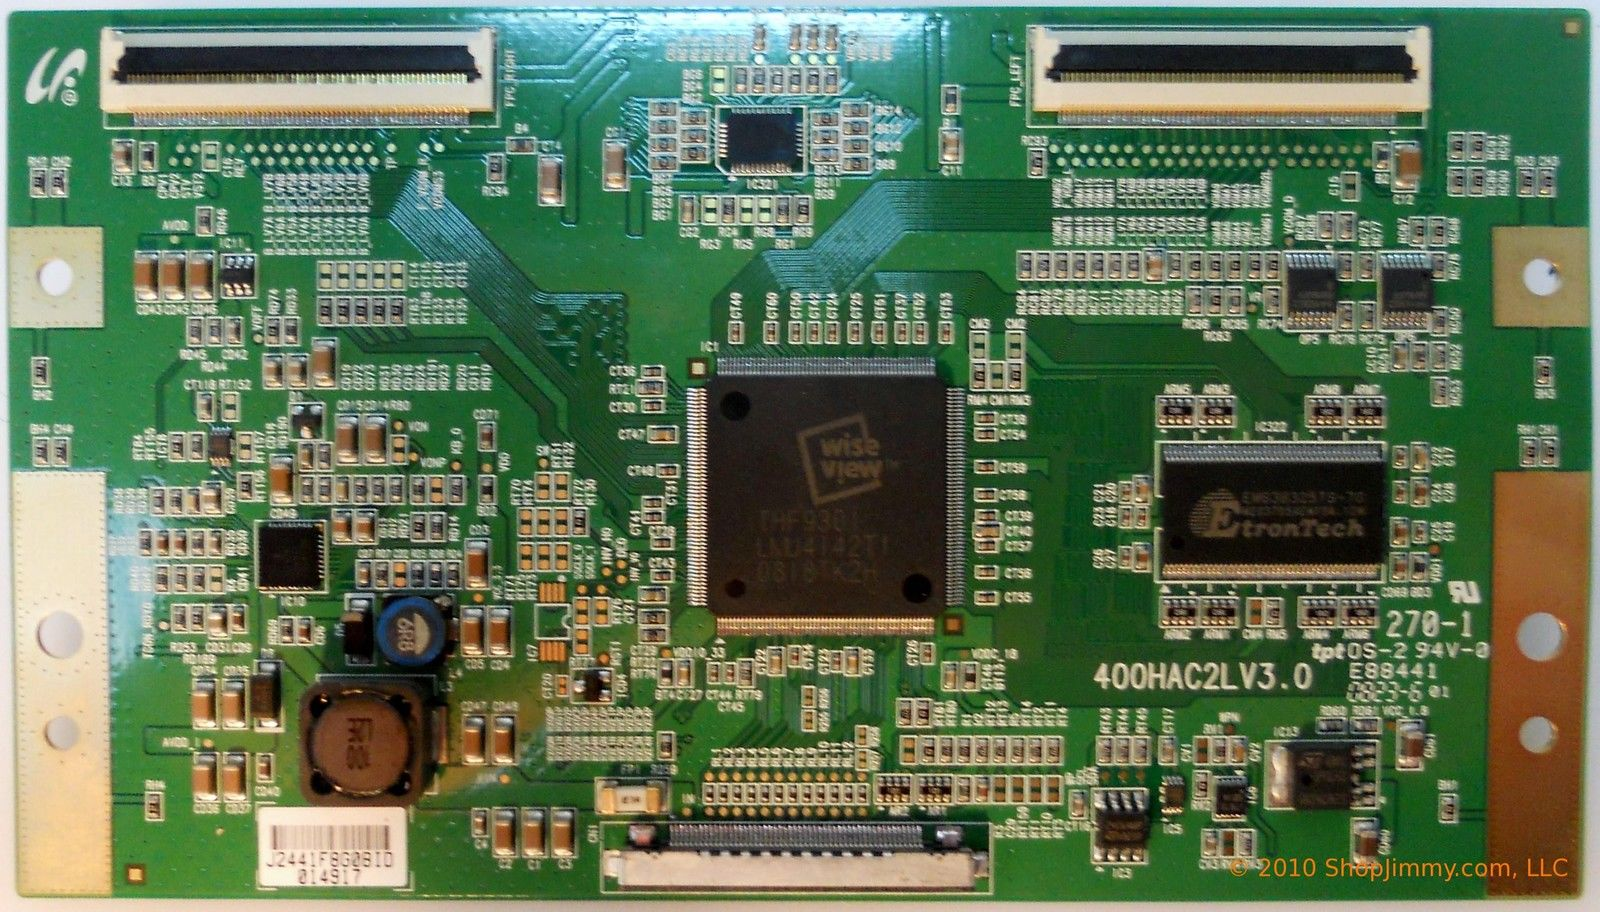 Sony LJ94-02441F (400HAC2LV3.0) T-Con Board for KDL-40V4000 test